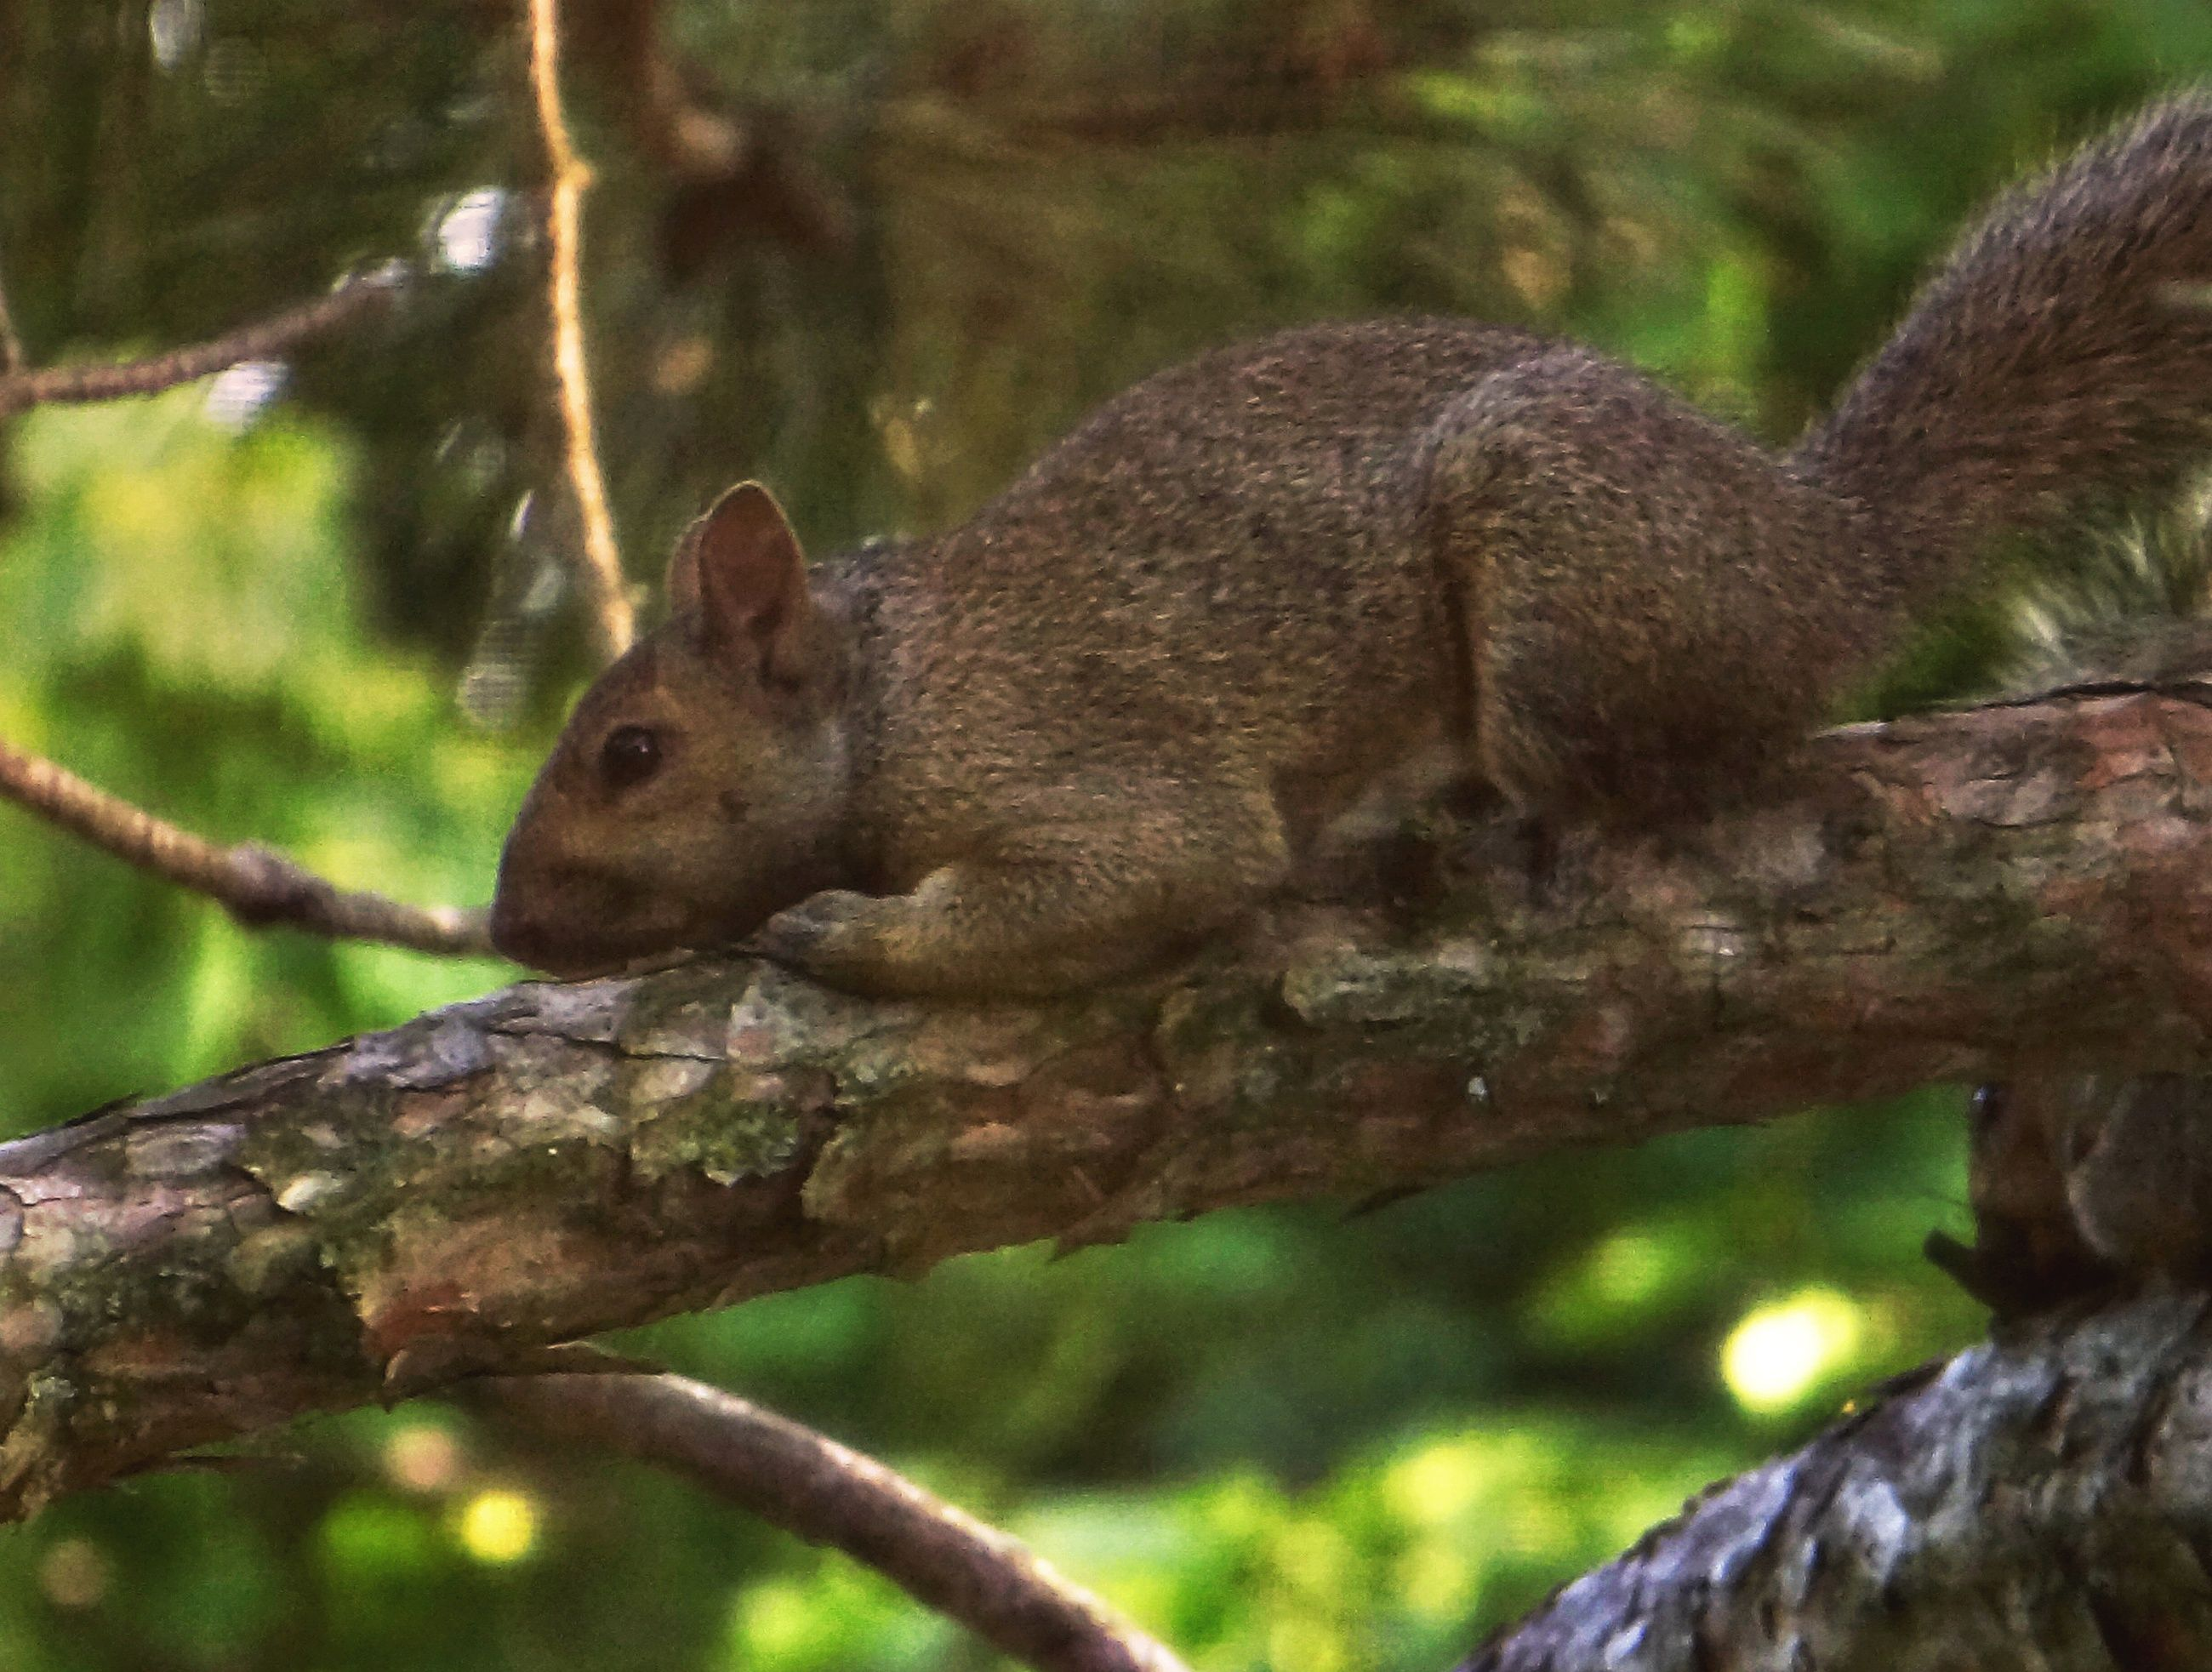 animal themes, animals in the wild, wildlife, one animal, tree, monkey, branch, focus on foreground, tree trunk, primate, forest, squirrel, zoo, wood - material, nature, sitting, mammal, outdoors, day, perching